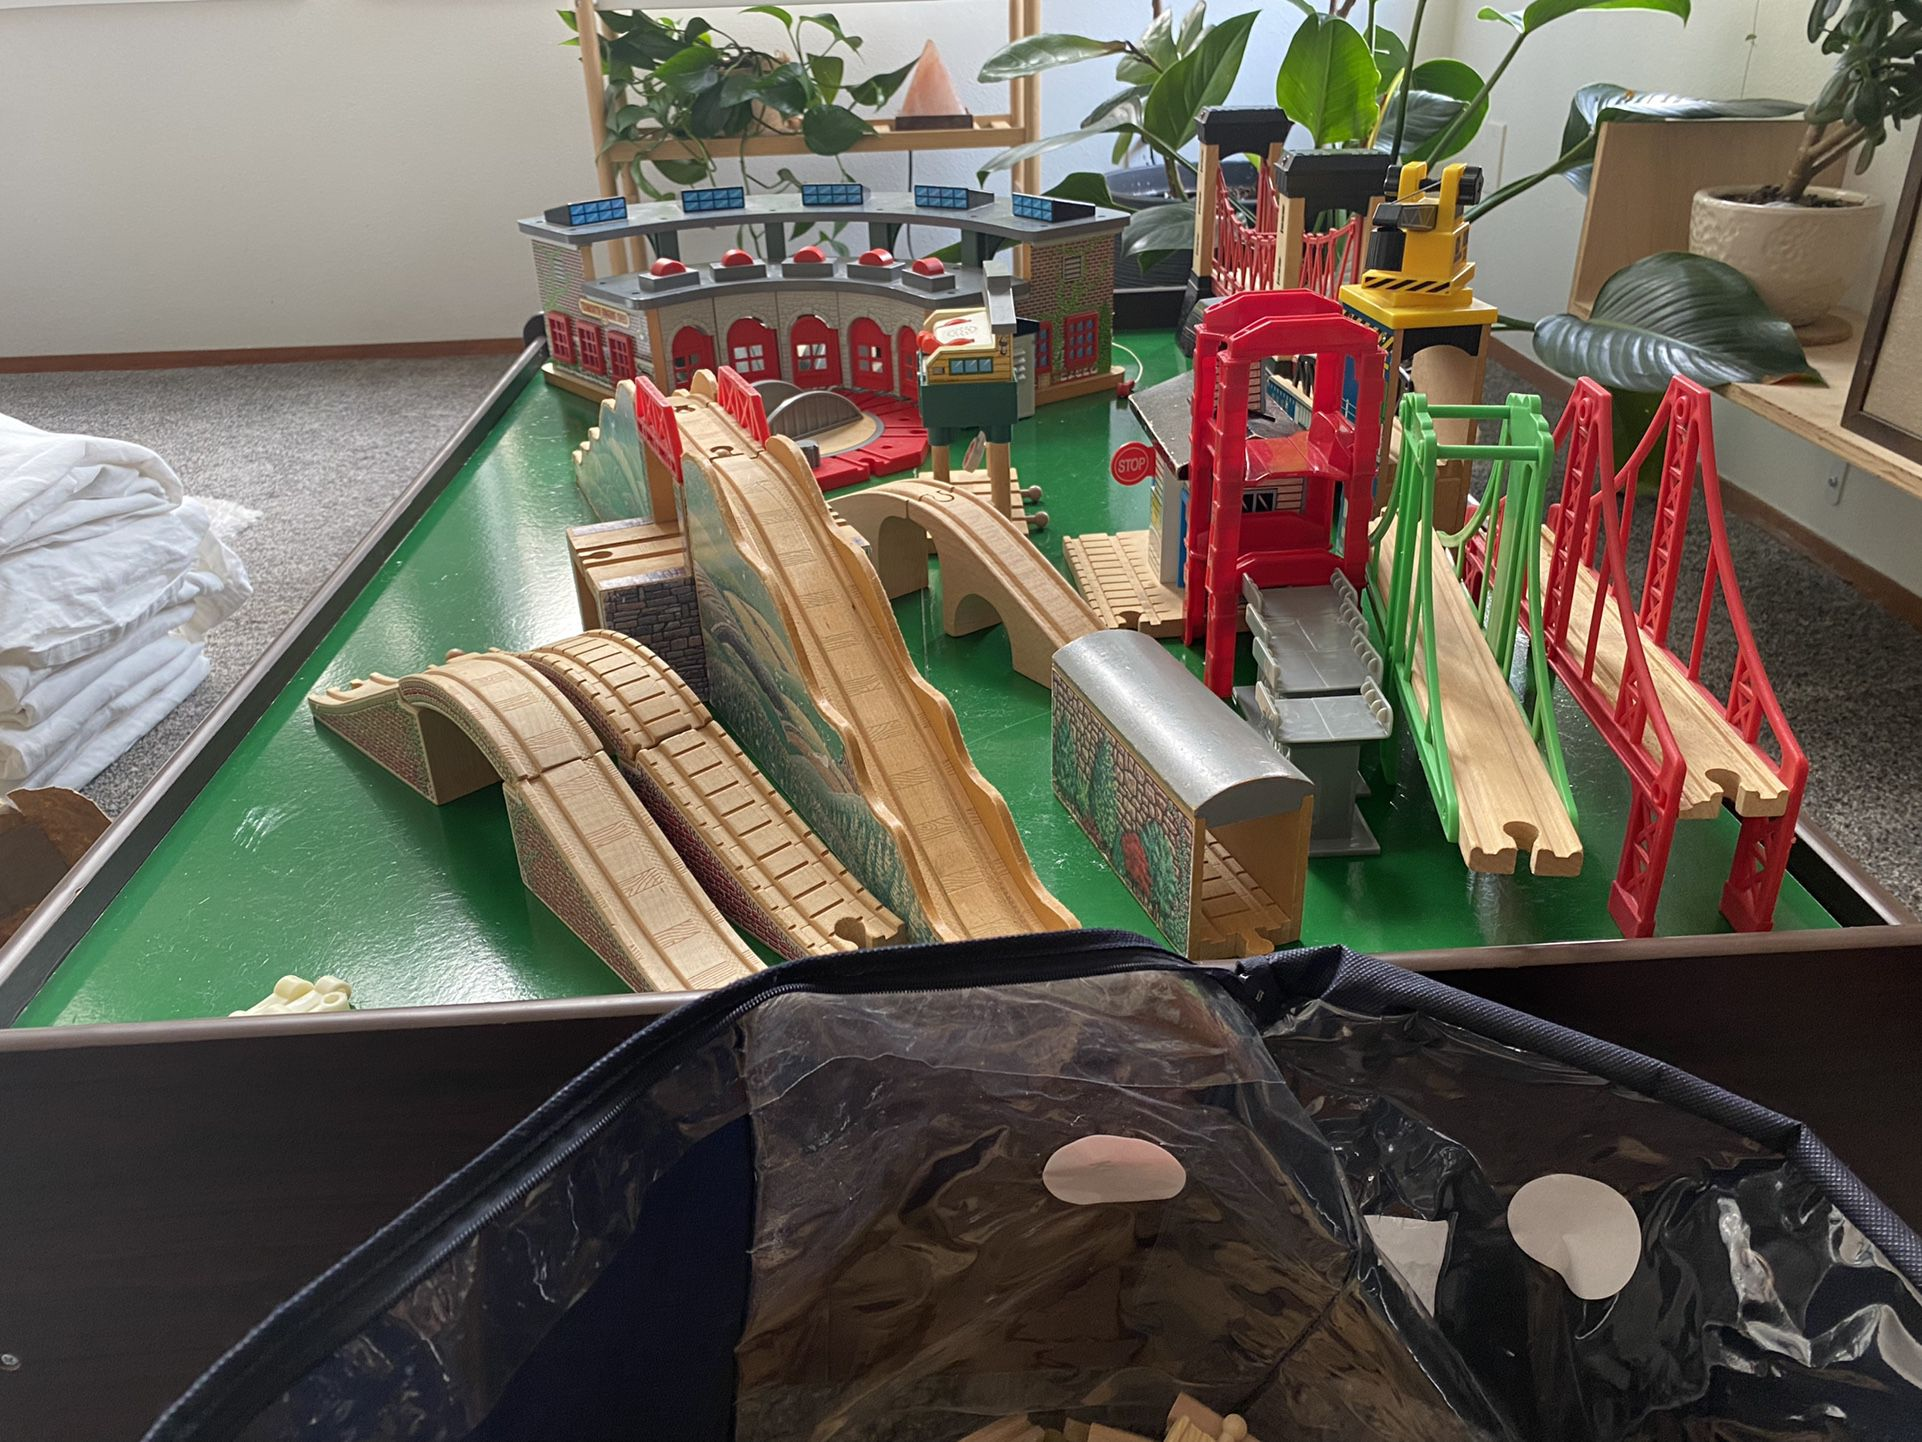 Thomas And Friends, Brio, Melissa And Doug, Train Table And Accessories